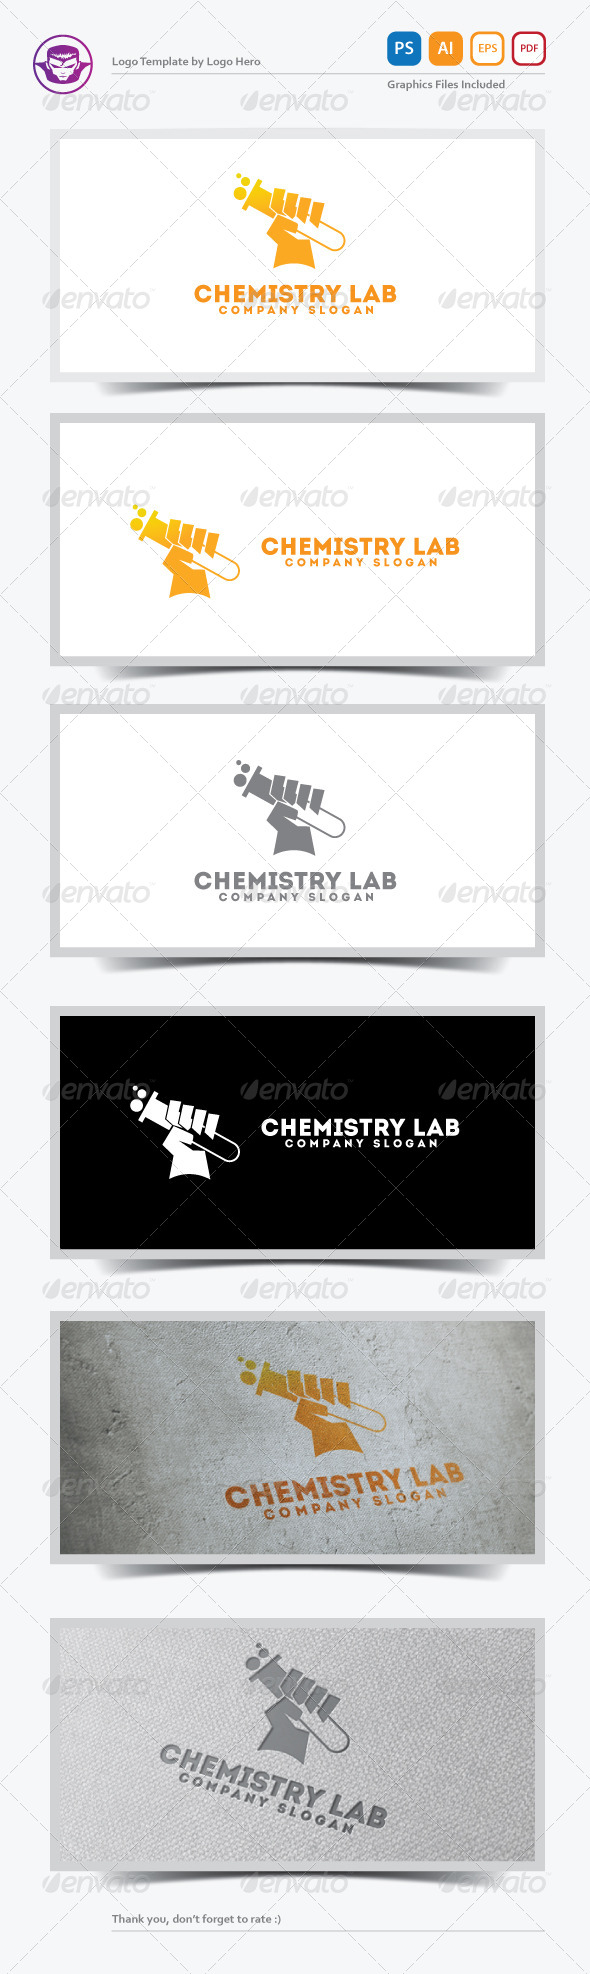 GraphicRiver Chemistry Lab Logo Template 5583434